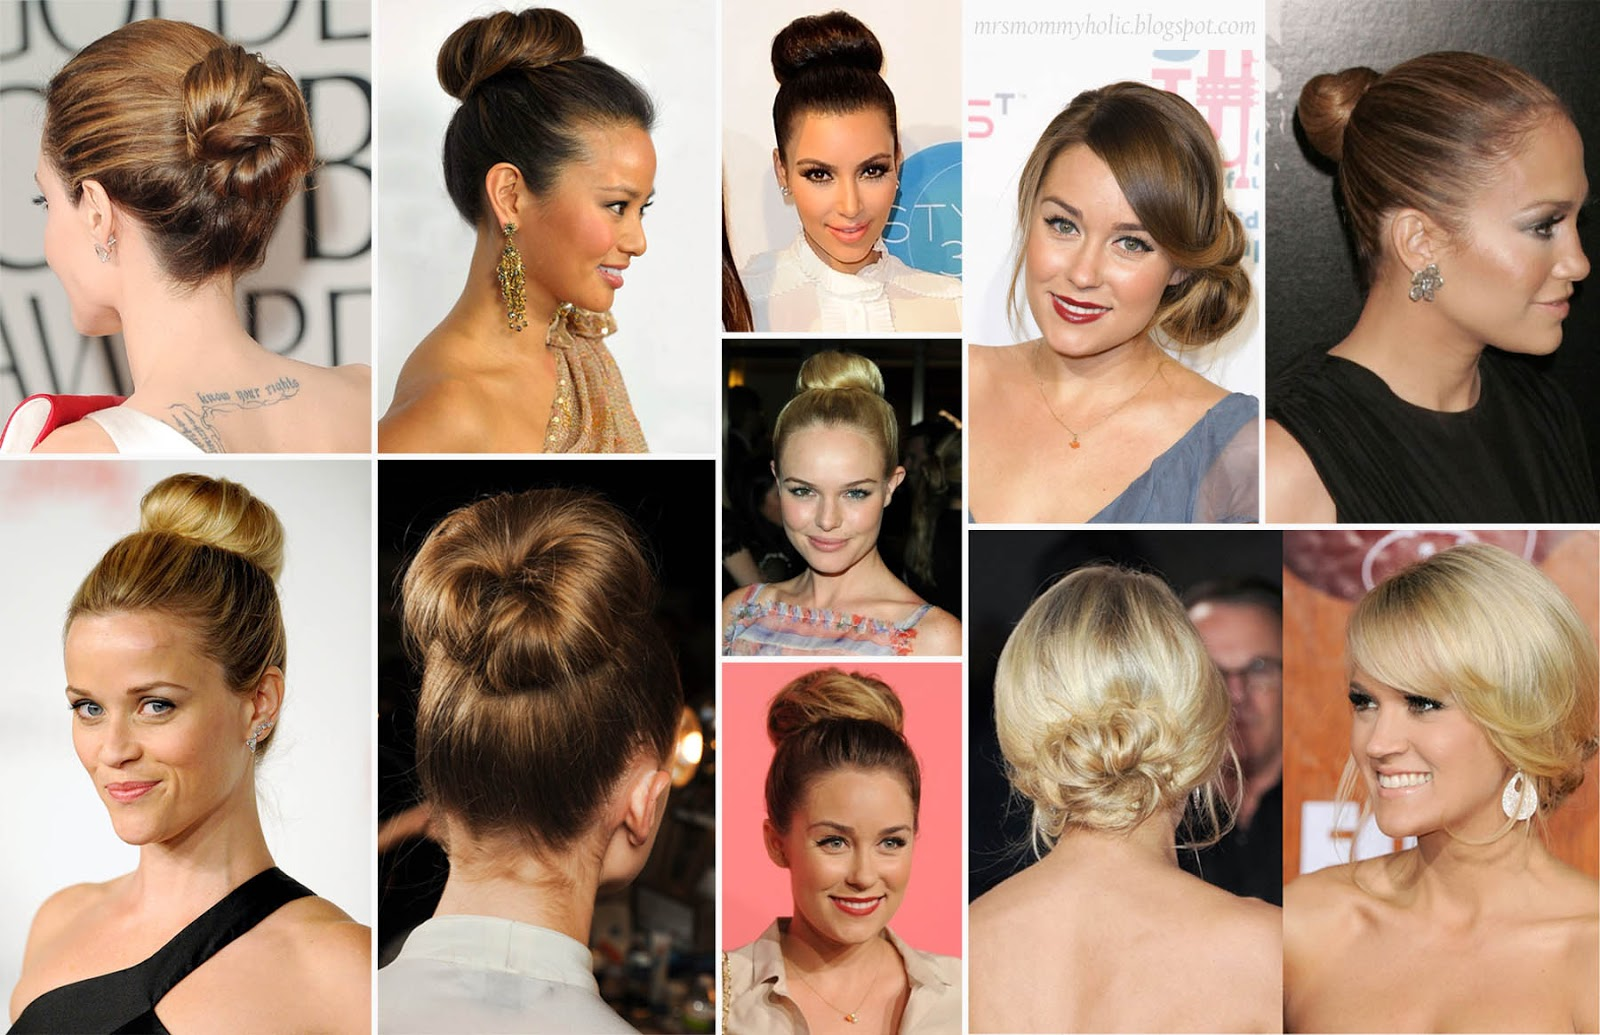 Incredible Mrsmommyholic Easiest Hairstyle Ever The Donut Bun Hairstyles For Men Maxibearus